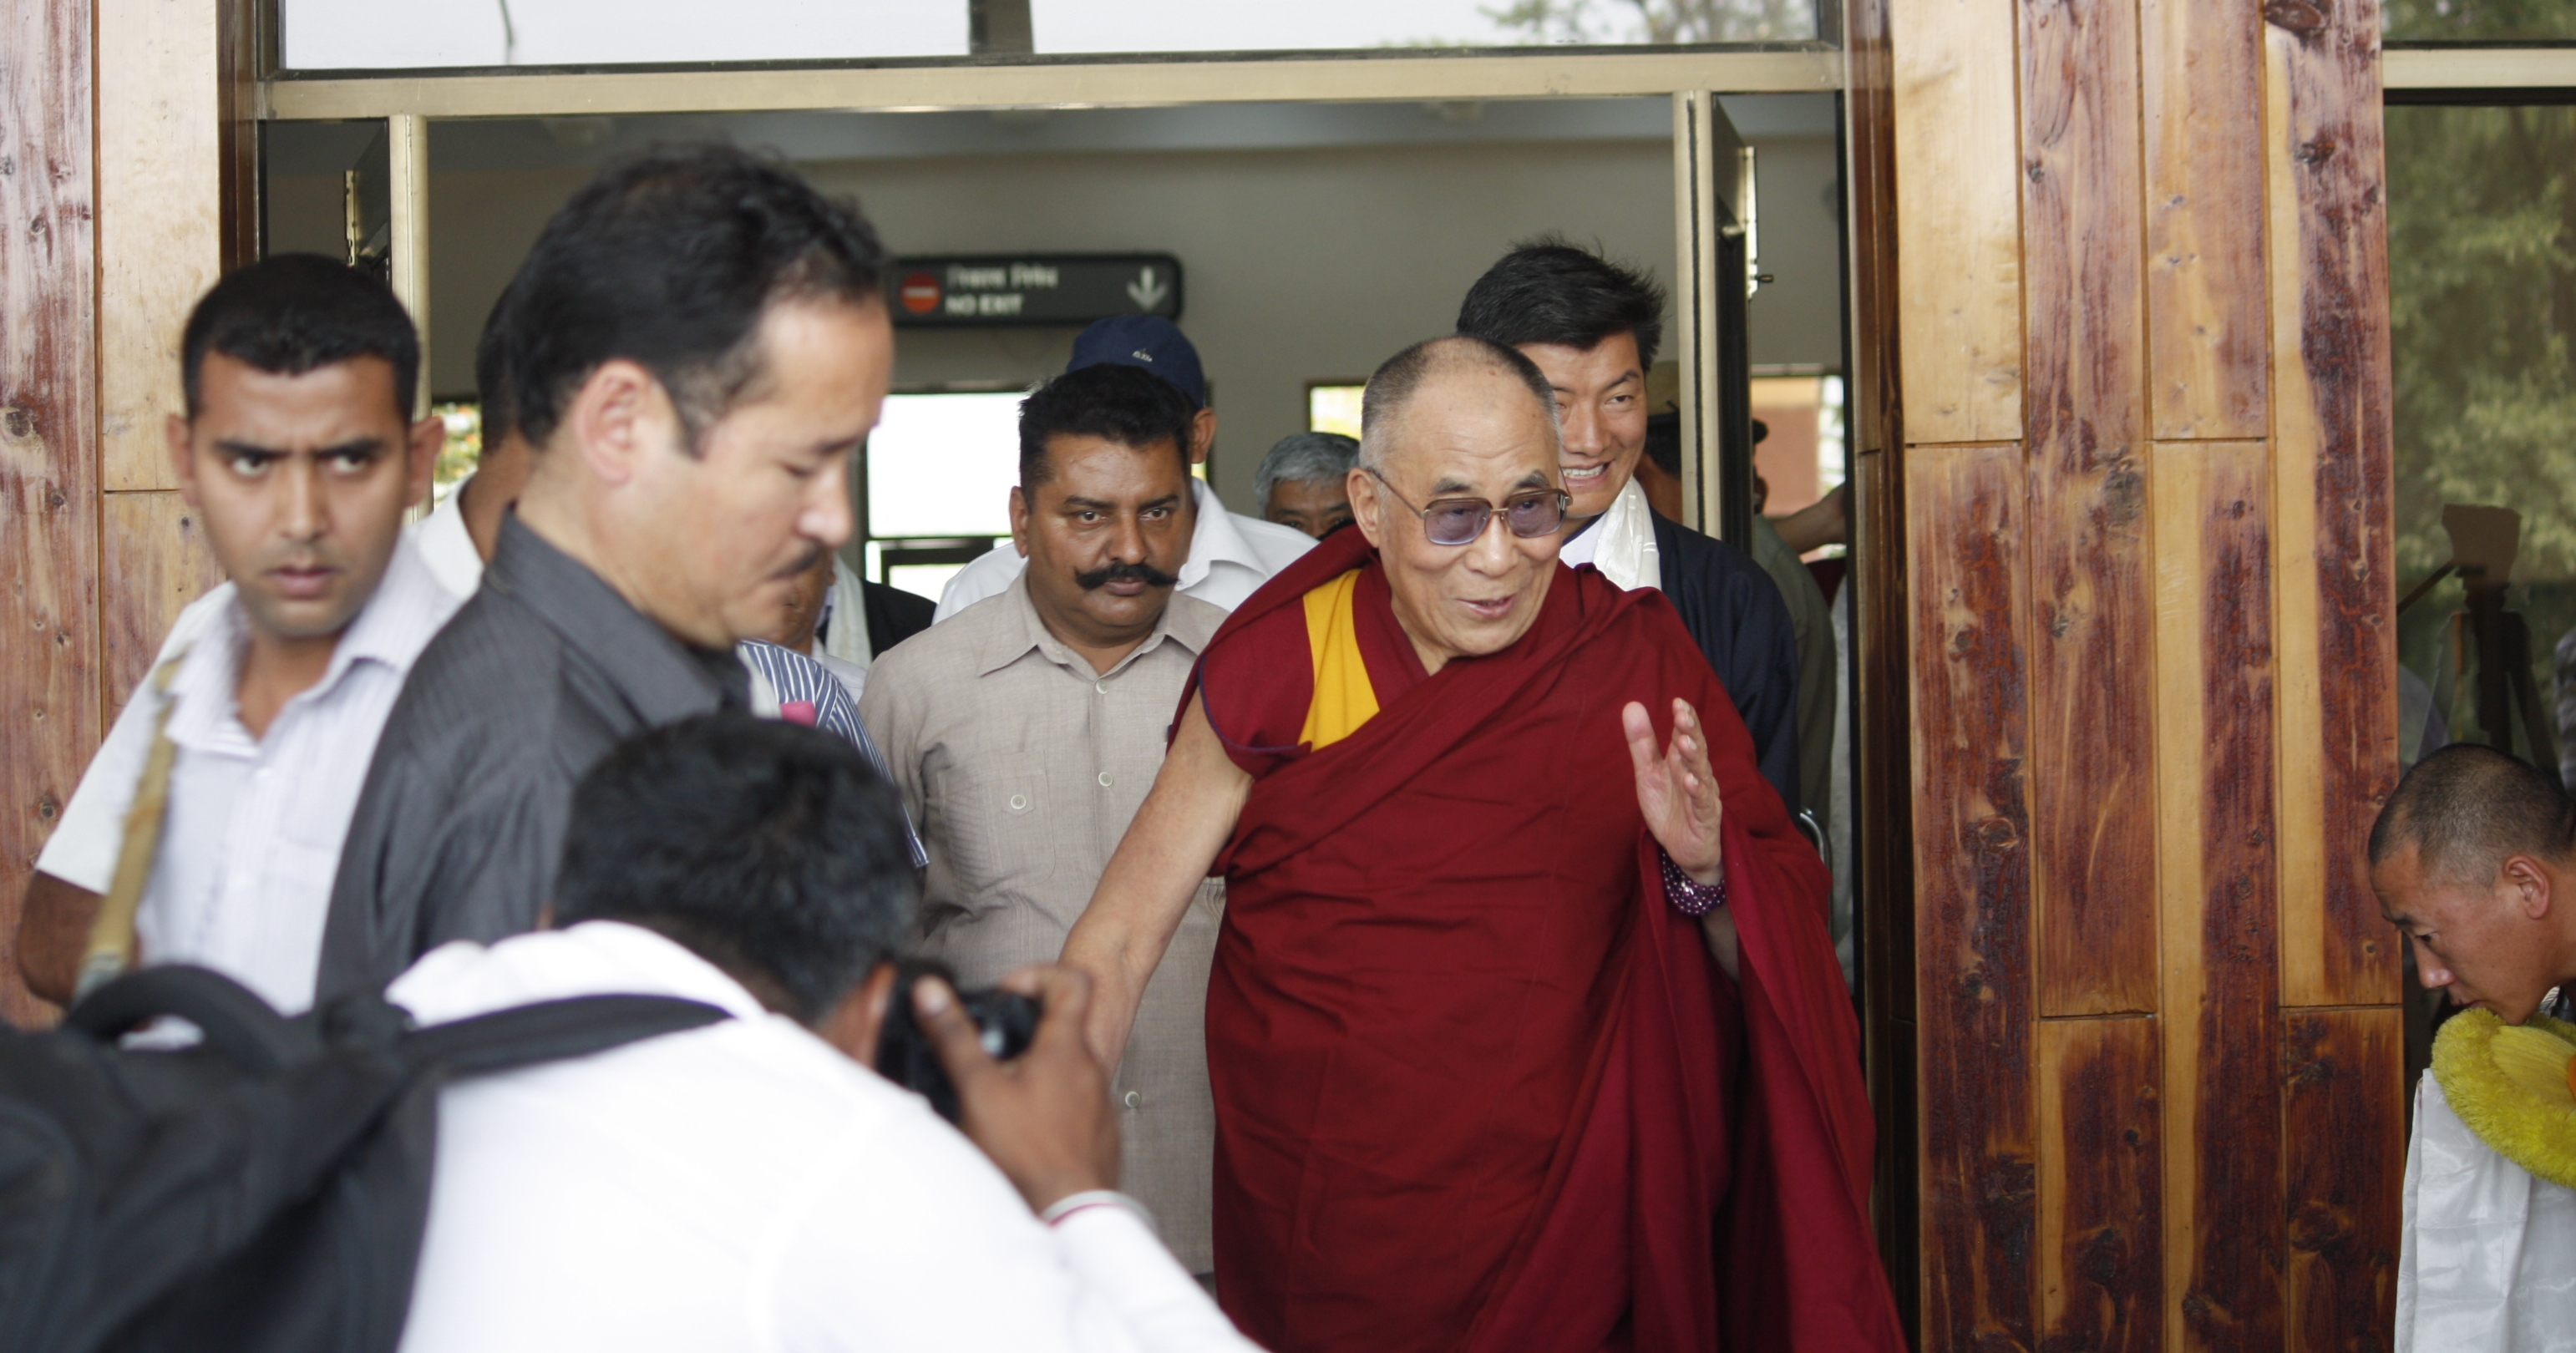 His Holiness the Dalai Lama returned to Dharamshala